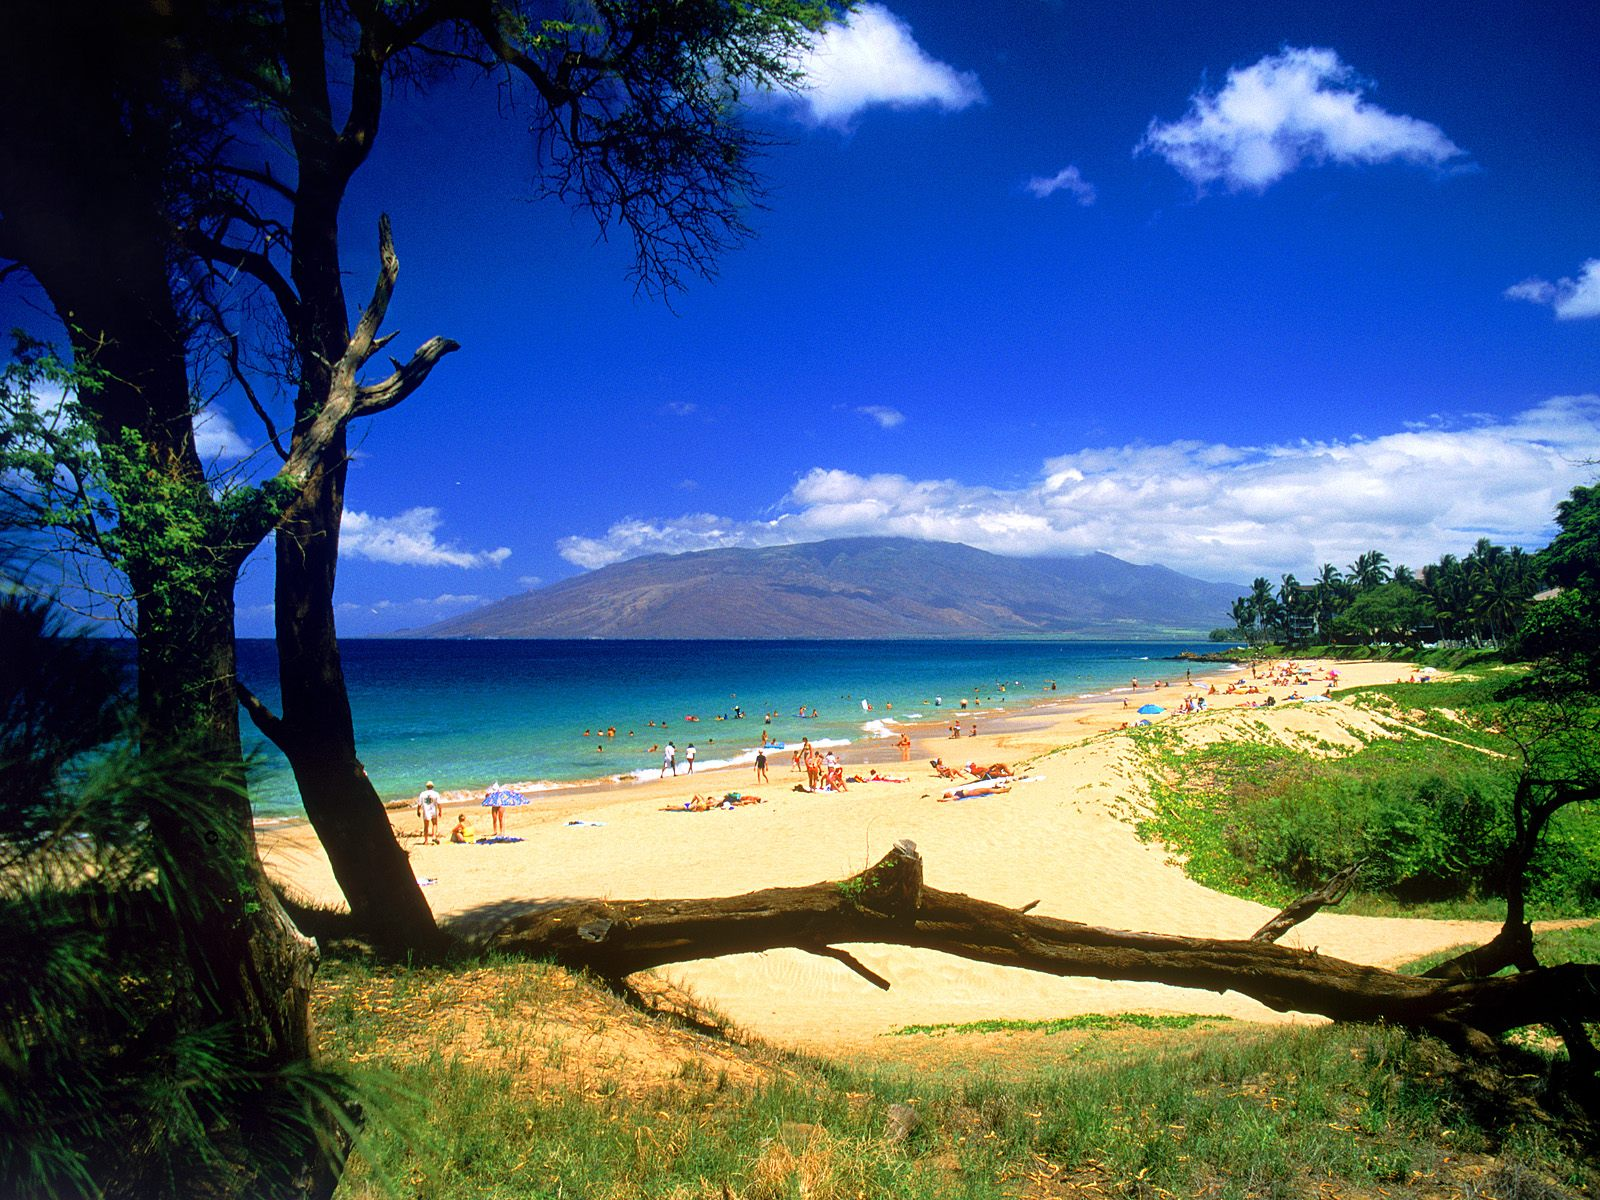 http://2.bp.blogspot.com/-D2Vx7d6raMg/Th4_Ssejn7I/AAAAAAAABqE/eullumUp-0Q/s1600/The-best-top-summer-desktop-wallpapers-12.jpg